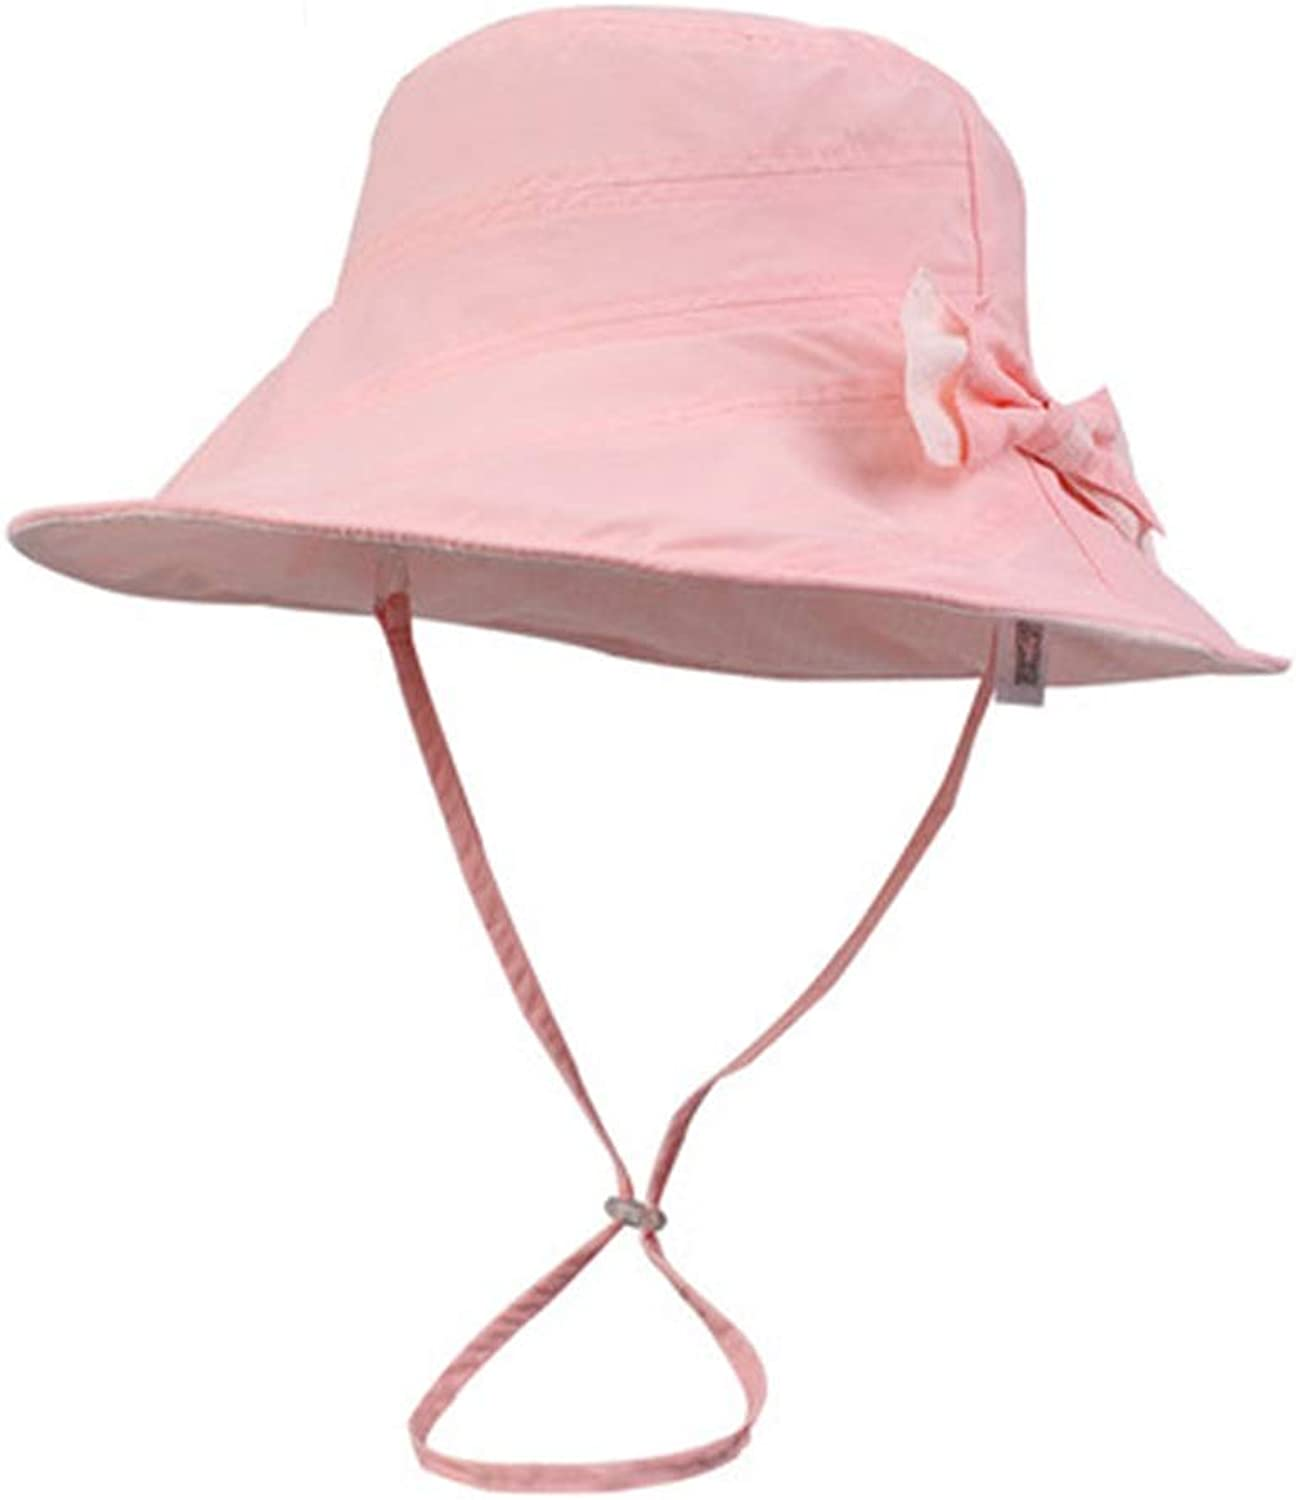 Summer Ladies Cool Hat Folding Visor Ladies Summer Sun Hat Basin Cap Female Summer Big Sun Hat (color   Pink, Size   57.5cm)